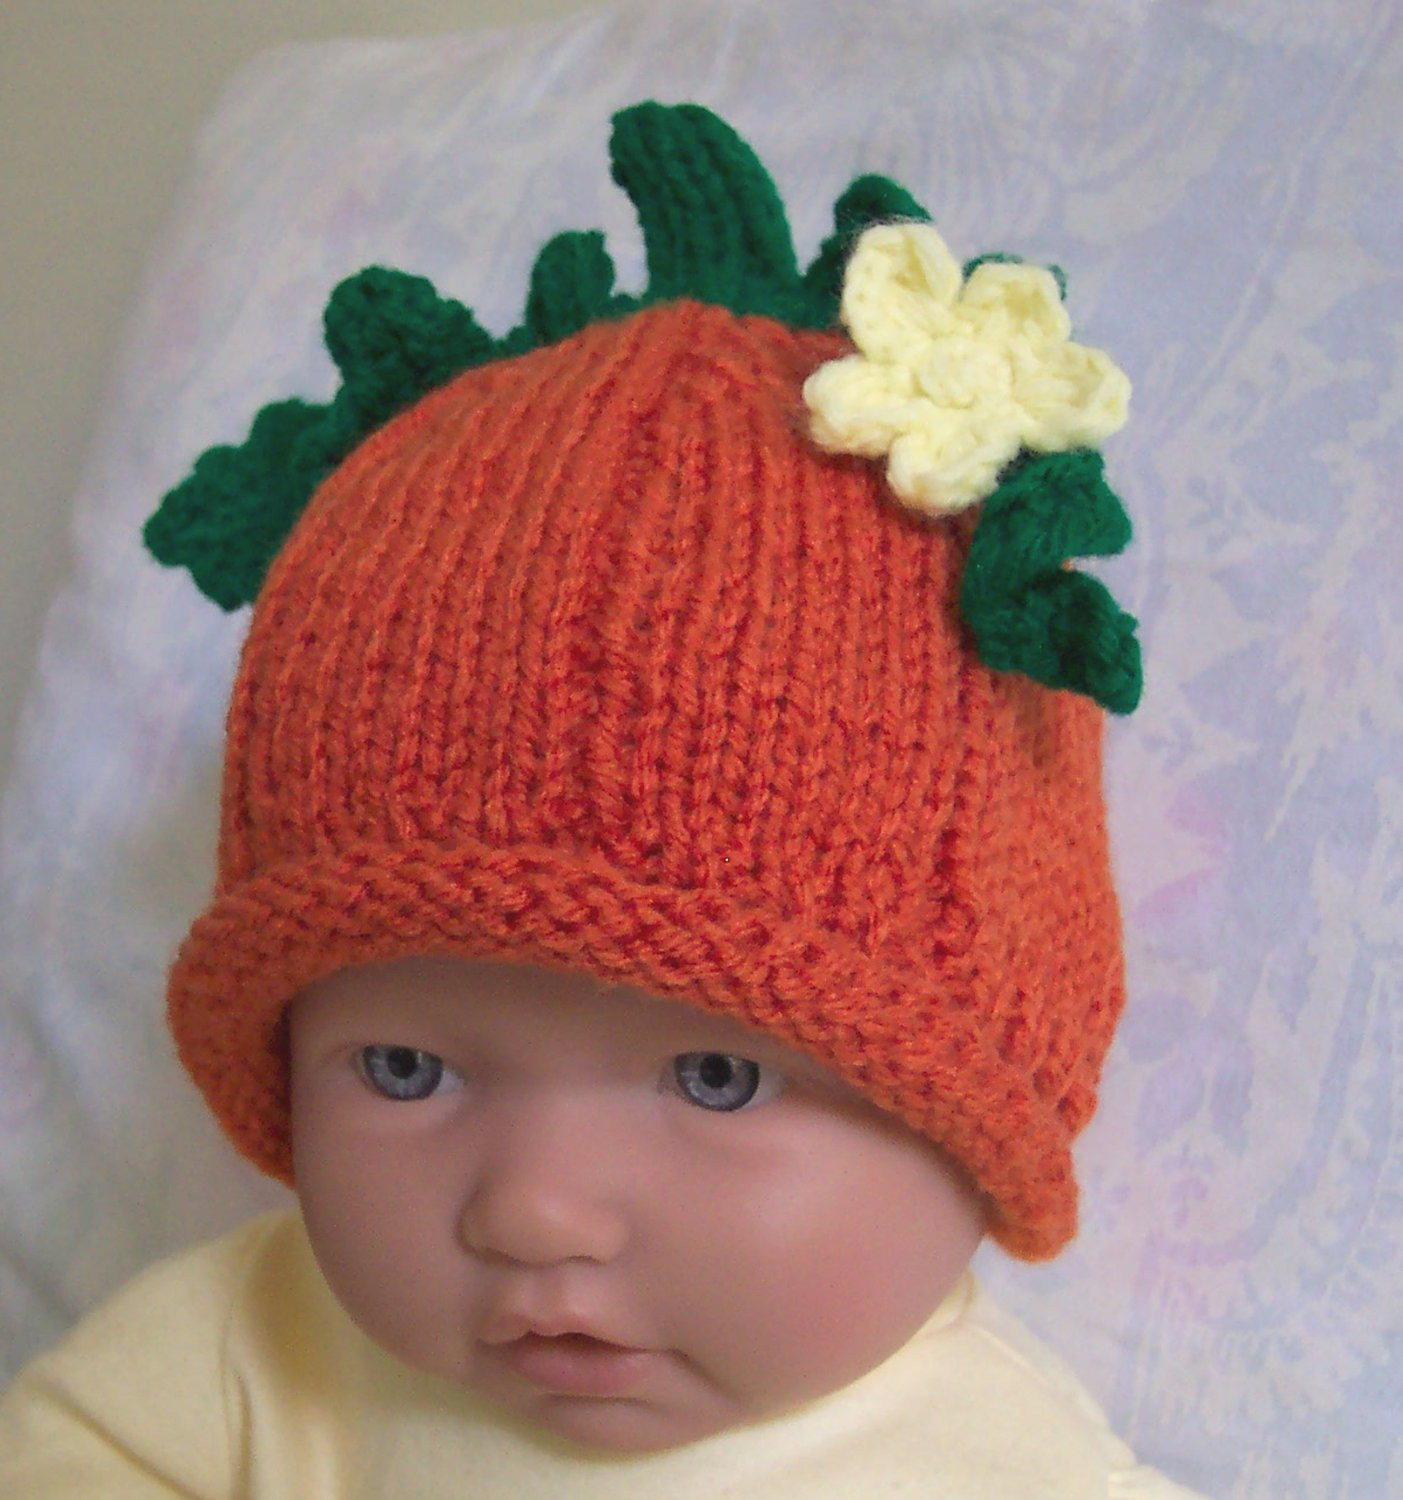 Inspirational Custom Handmade Knit Pumpkin Baby Hat Cap Beanie 0 12m Cute Knitted Pumpkin Hat Of Marvelous 40 Ideas Knitted Pumpkin Hat